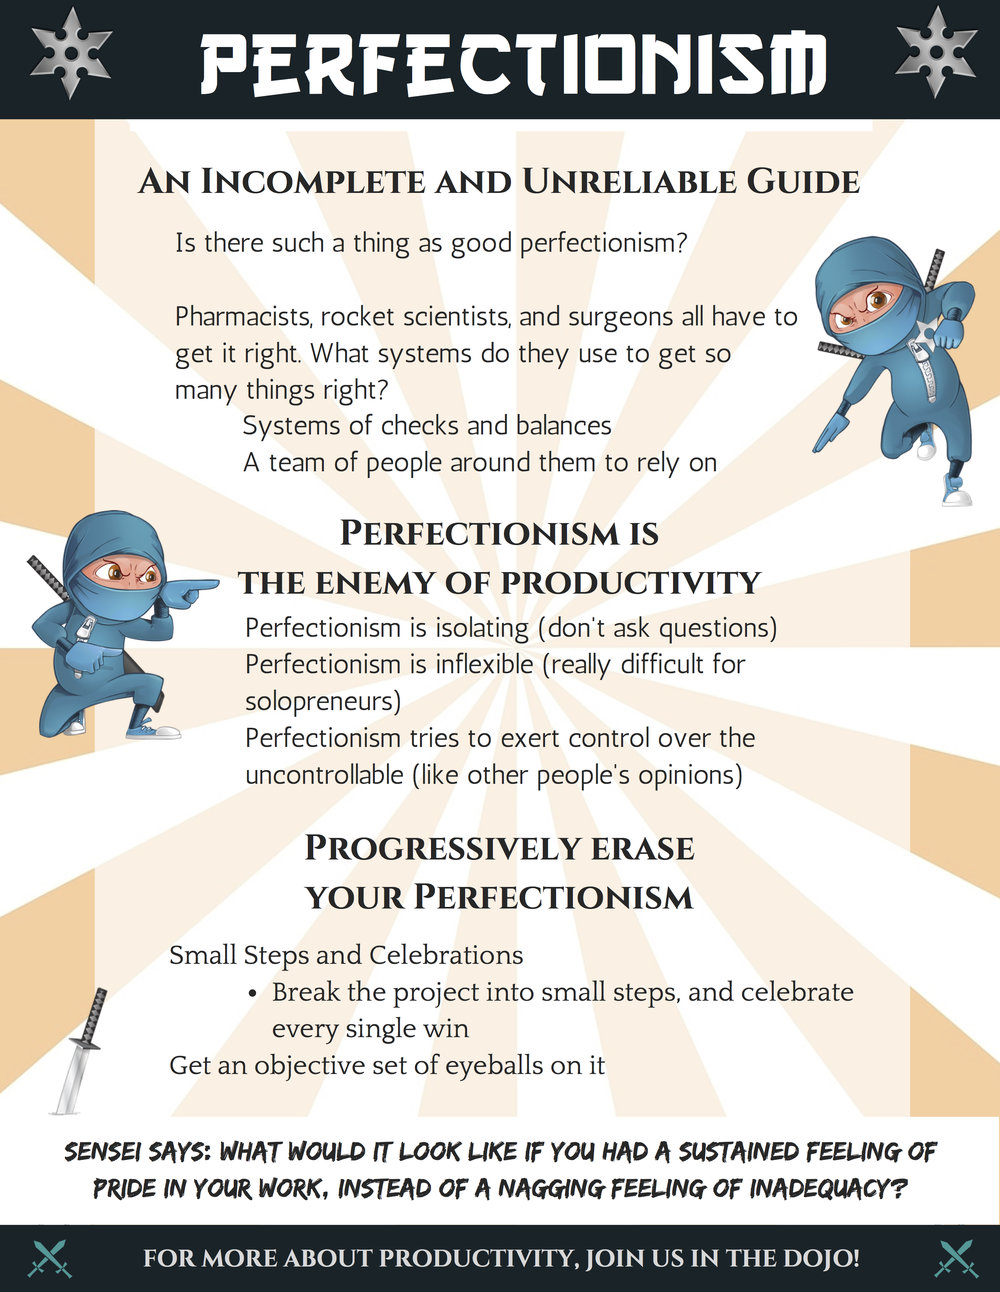 Perfectionism: An Incomplete and Unreliable Guide